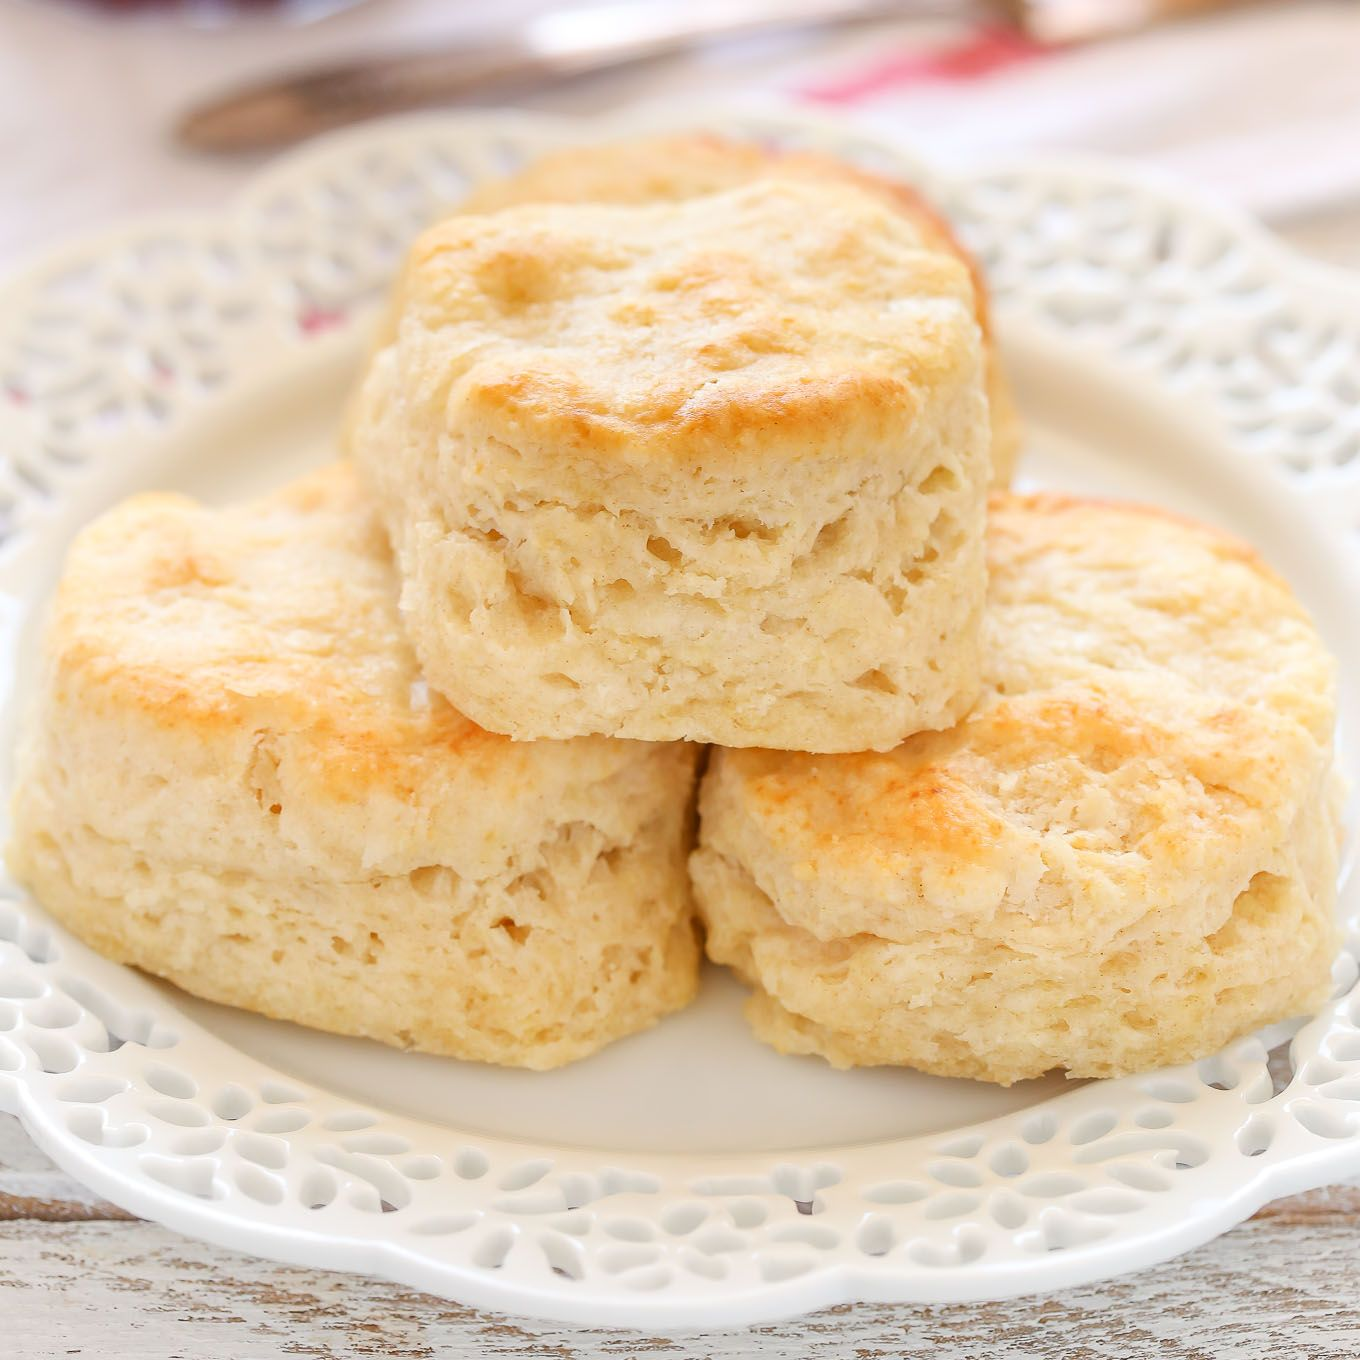 These Easy Buttermilk Biscuits Are Incredibly Soft Tall Flaky And Buttery Serve These With Some Jam Or Easy Biscuit Recipe Homemade Biscuits Biscuit Recipe